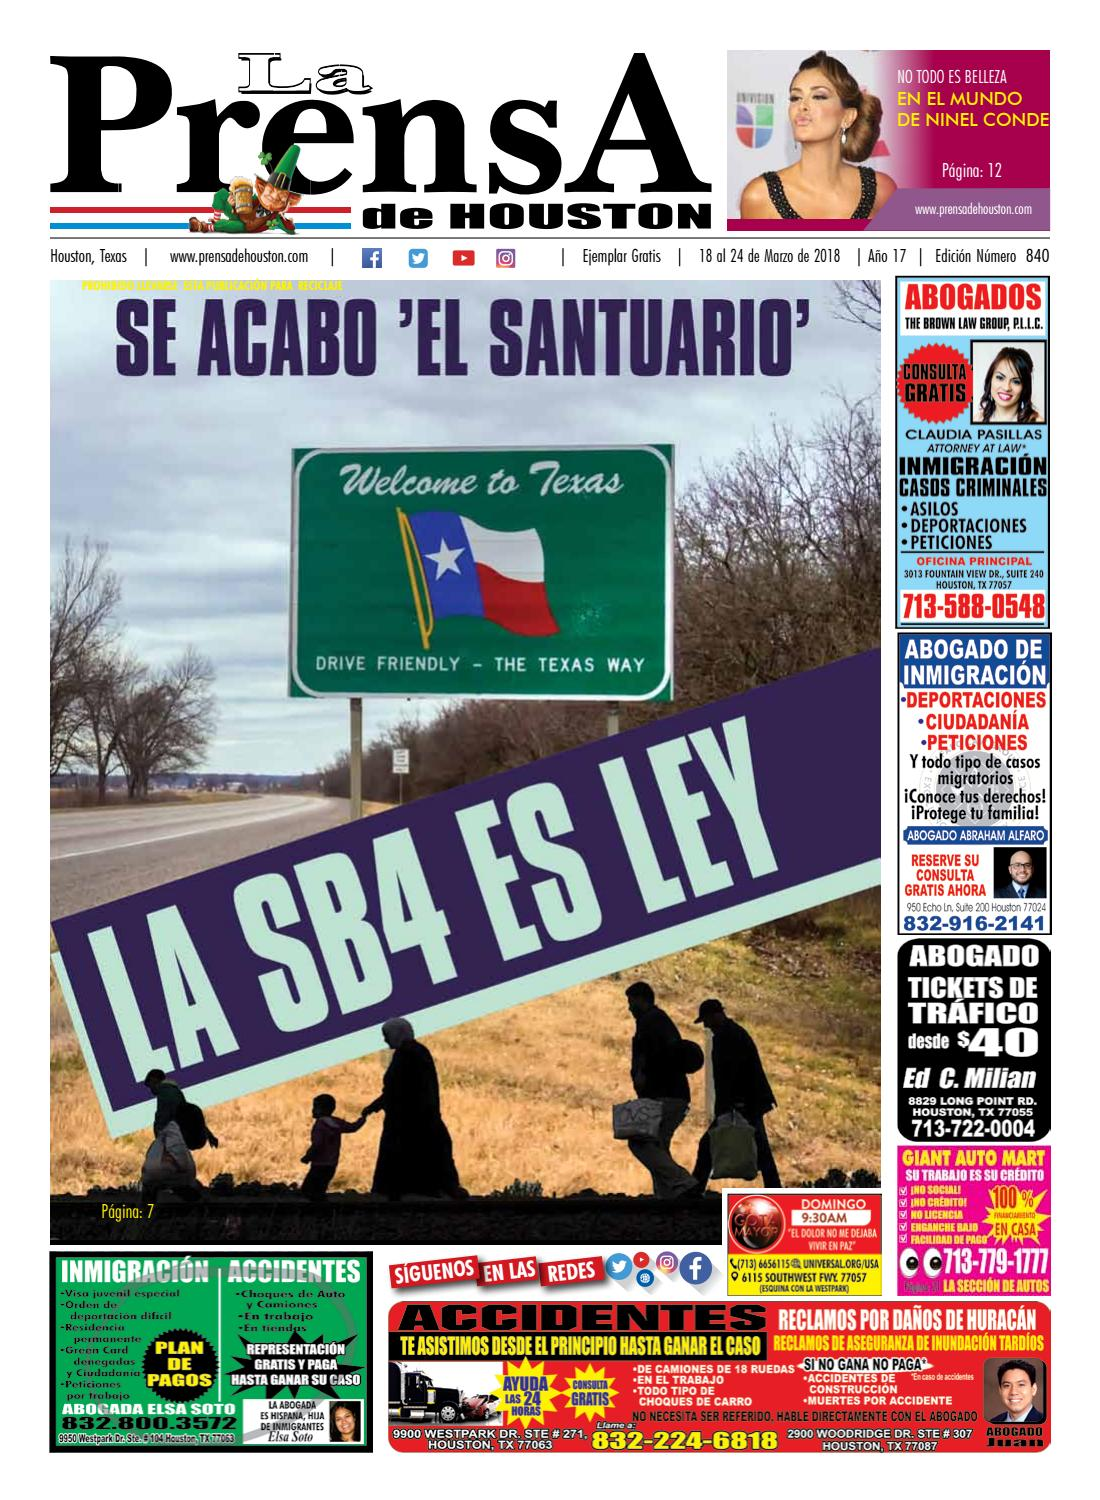 Edicion840 by La Prensa de Houston - issuu